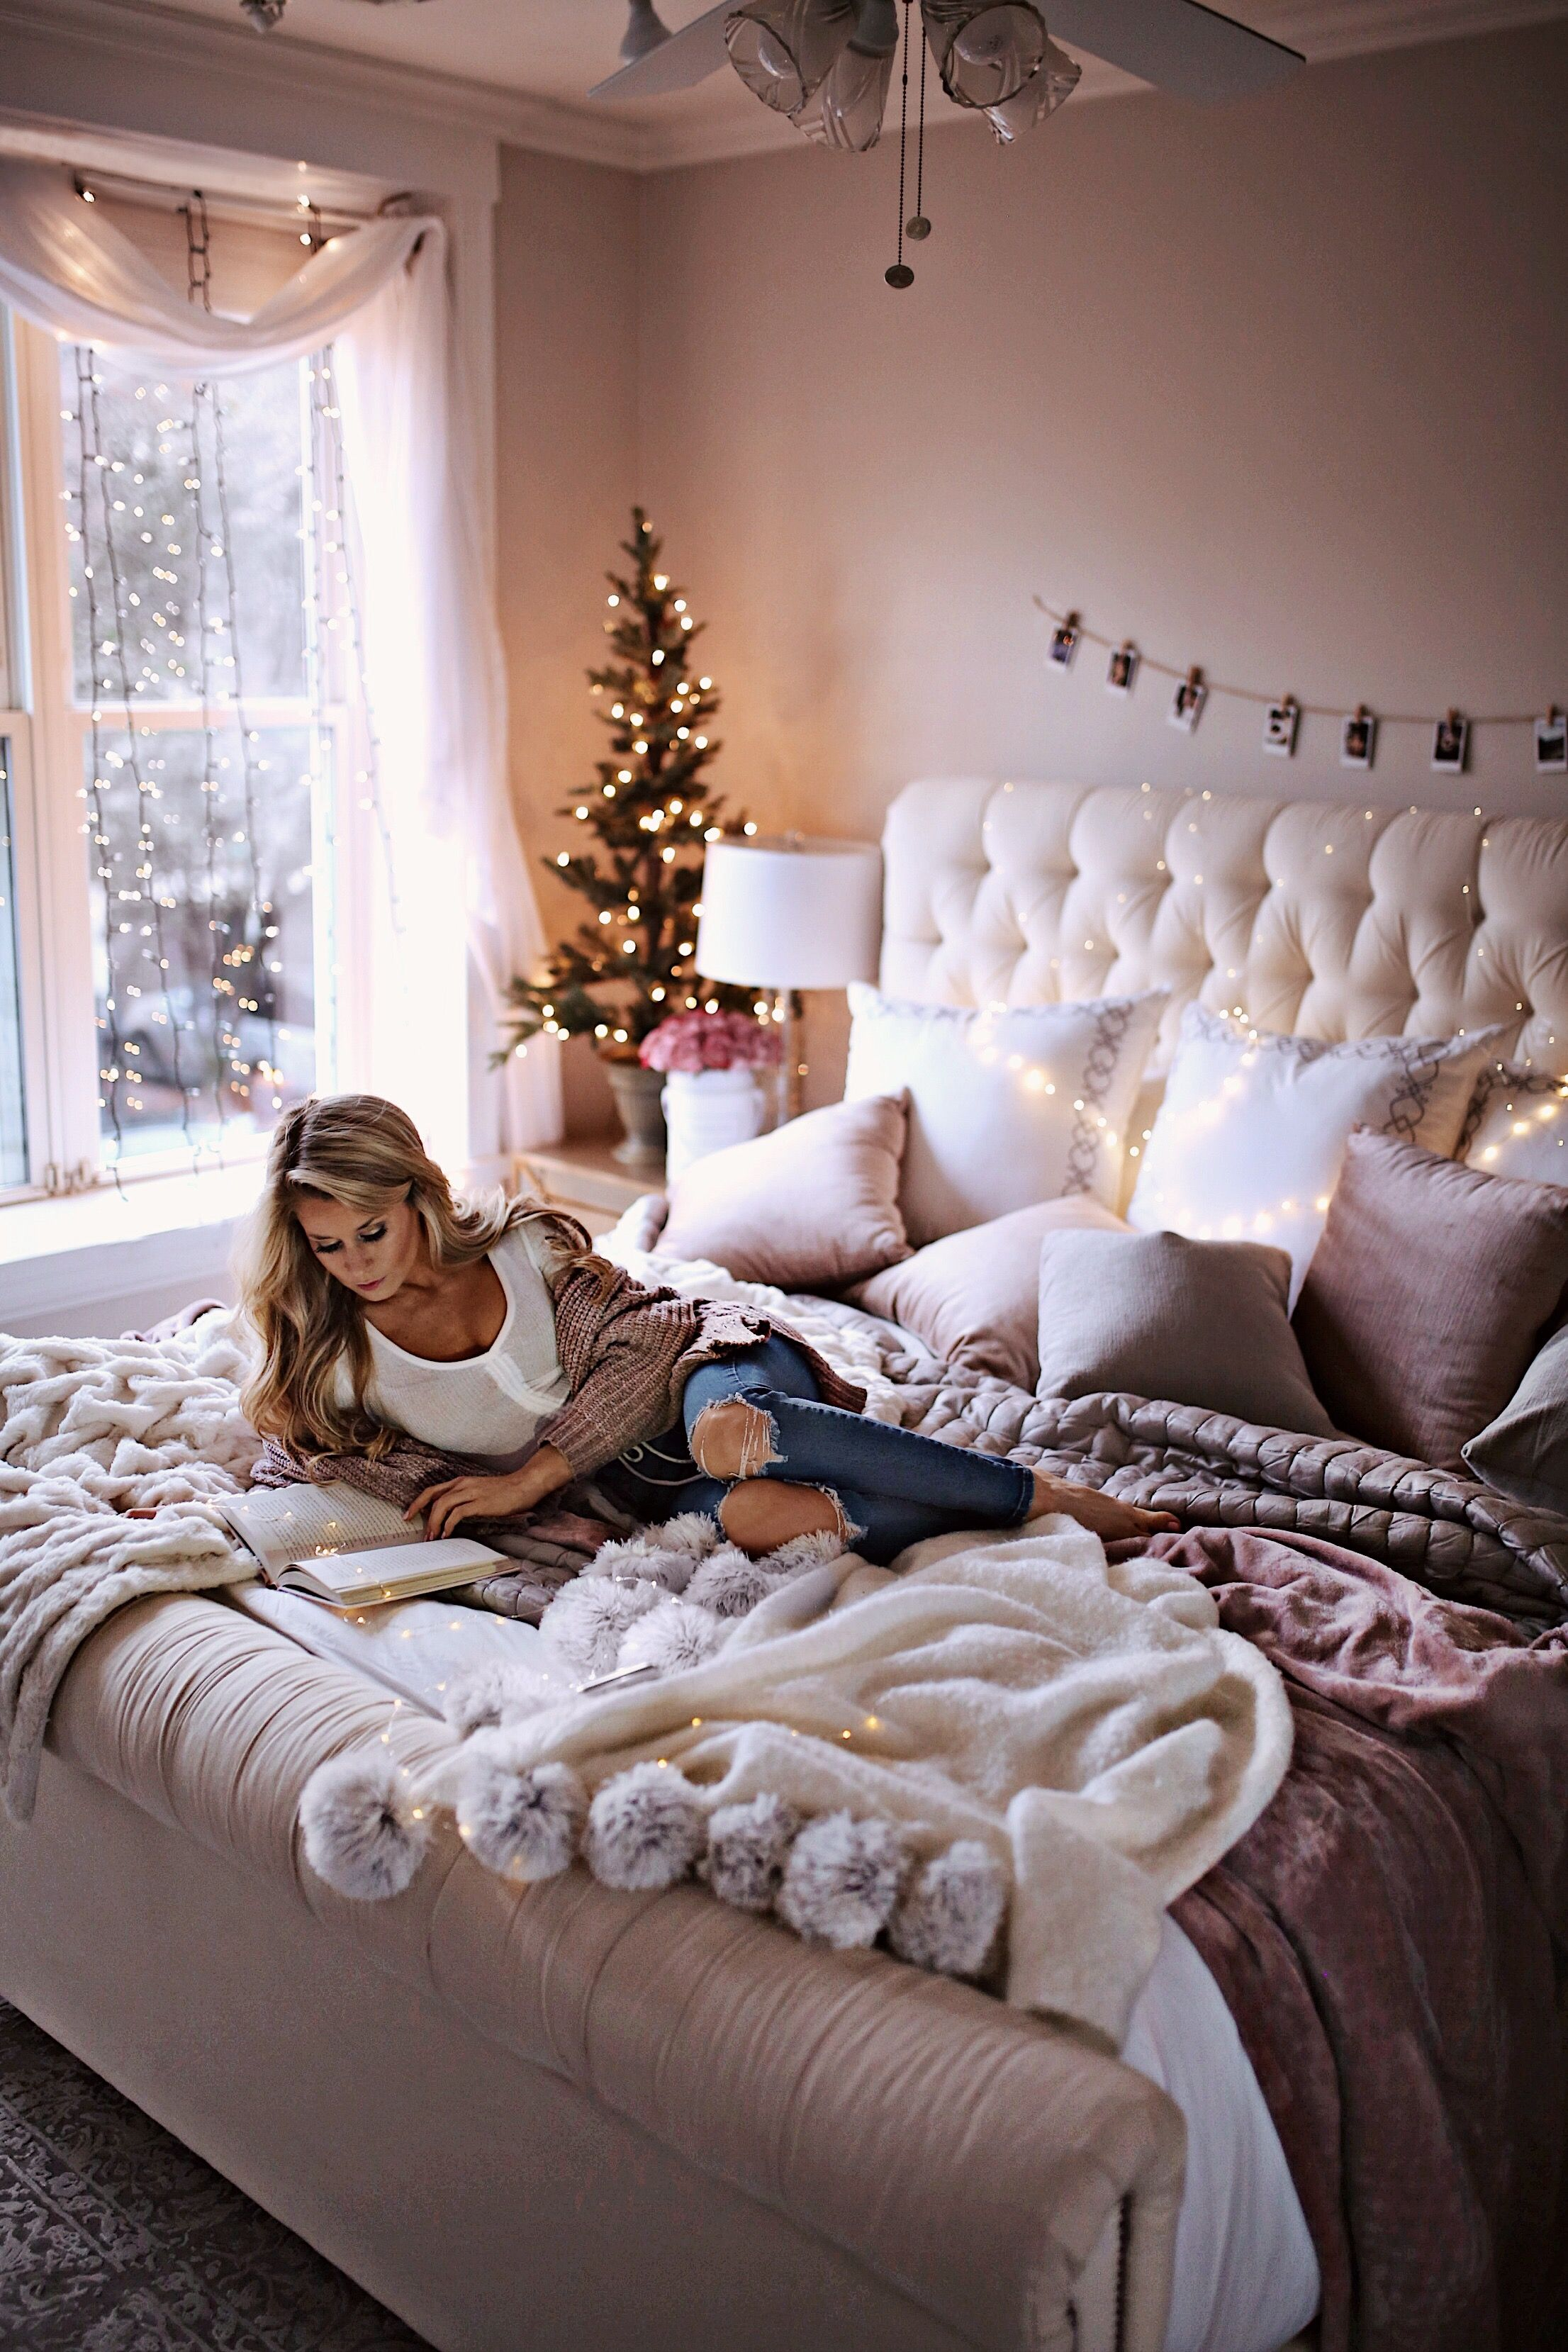 7 Holiday Decor Ideas for Your Bedroom | Bedrooms, Holidays and ...